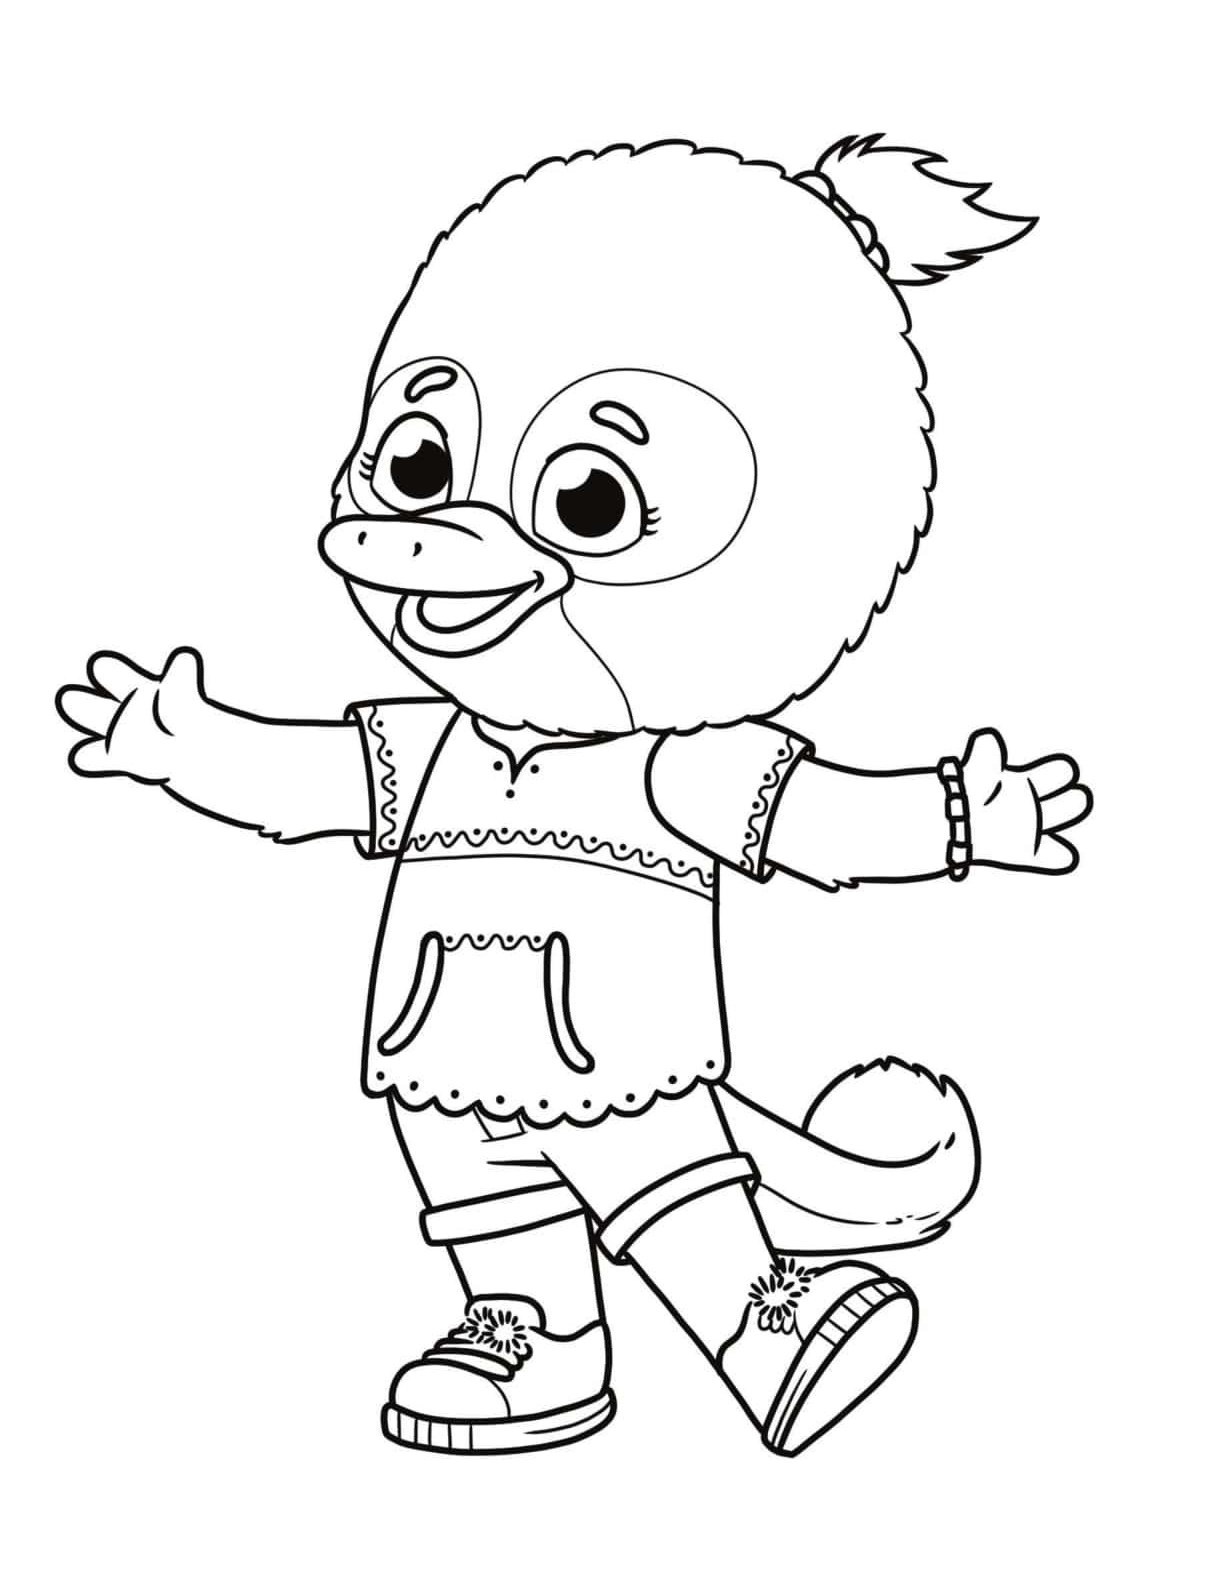 Jodi Platypus Coloring Page Free Printable Coloring Pages For Kids